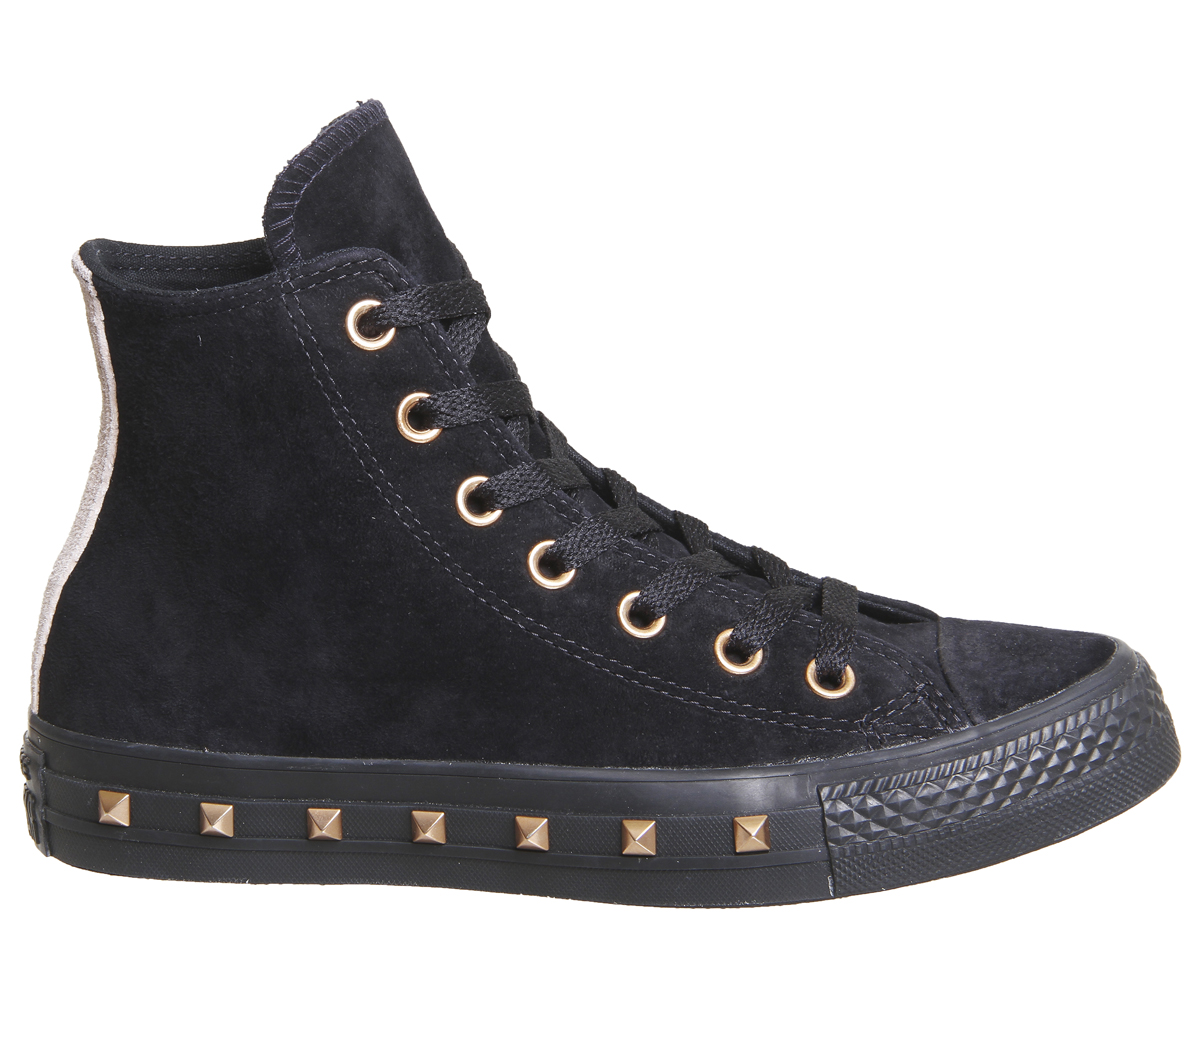 c0415c32cff8d3 Womens Converse All Star Hi Leather STUD BLACK PARTICLE BEIGE BLUSH ...